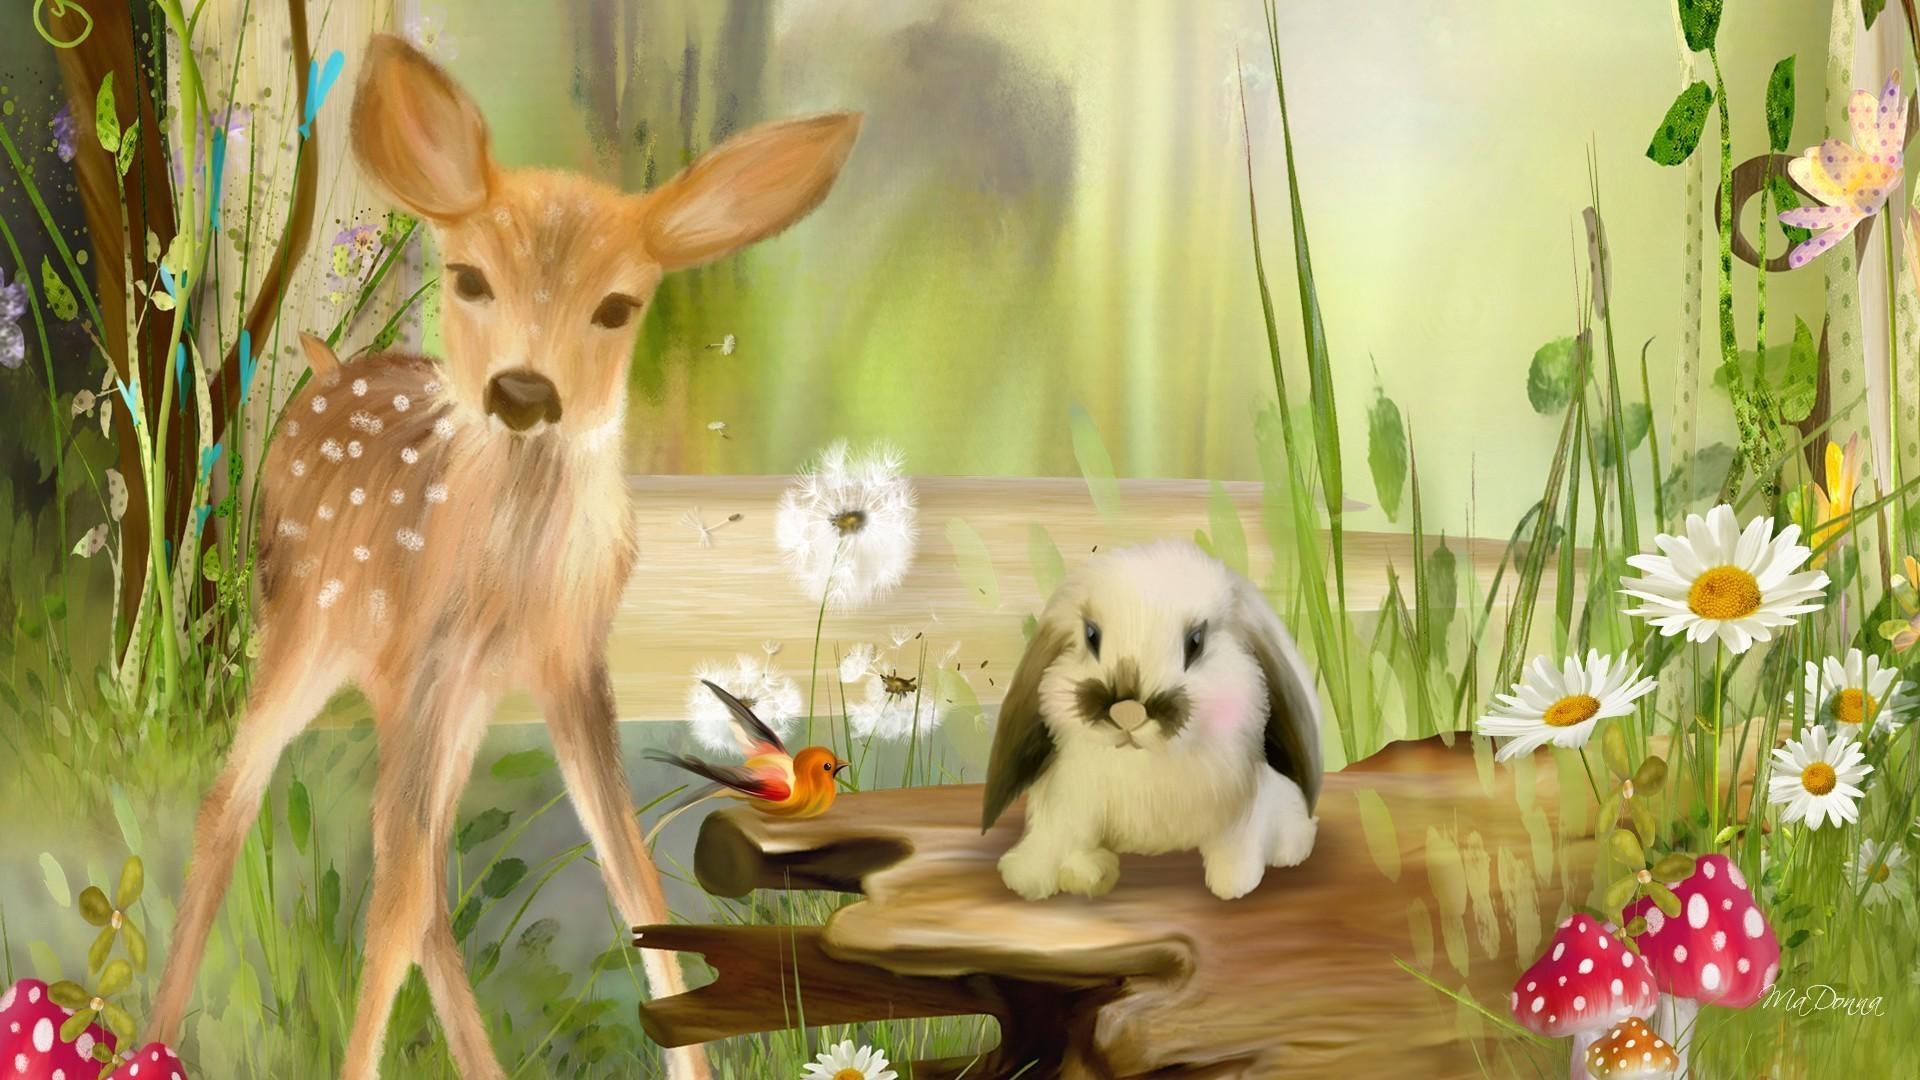 sweet fawn and spring bunny wallpaper | allwallpaper.in #9662 | pc | en